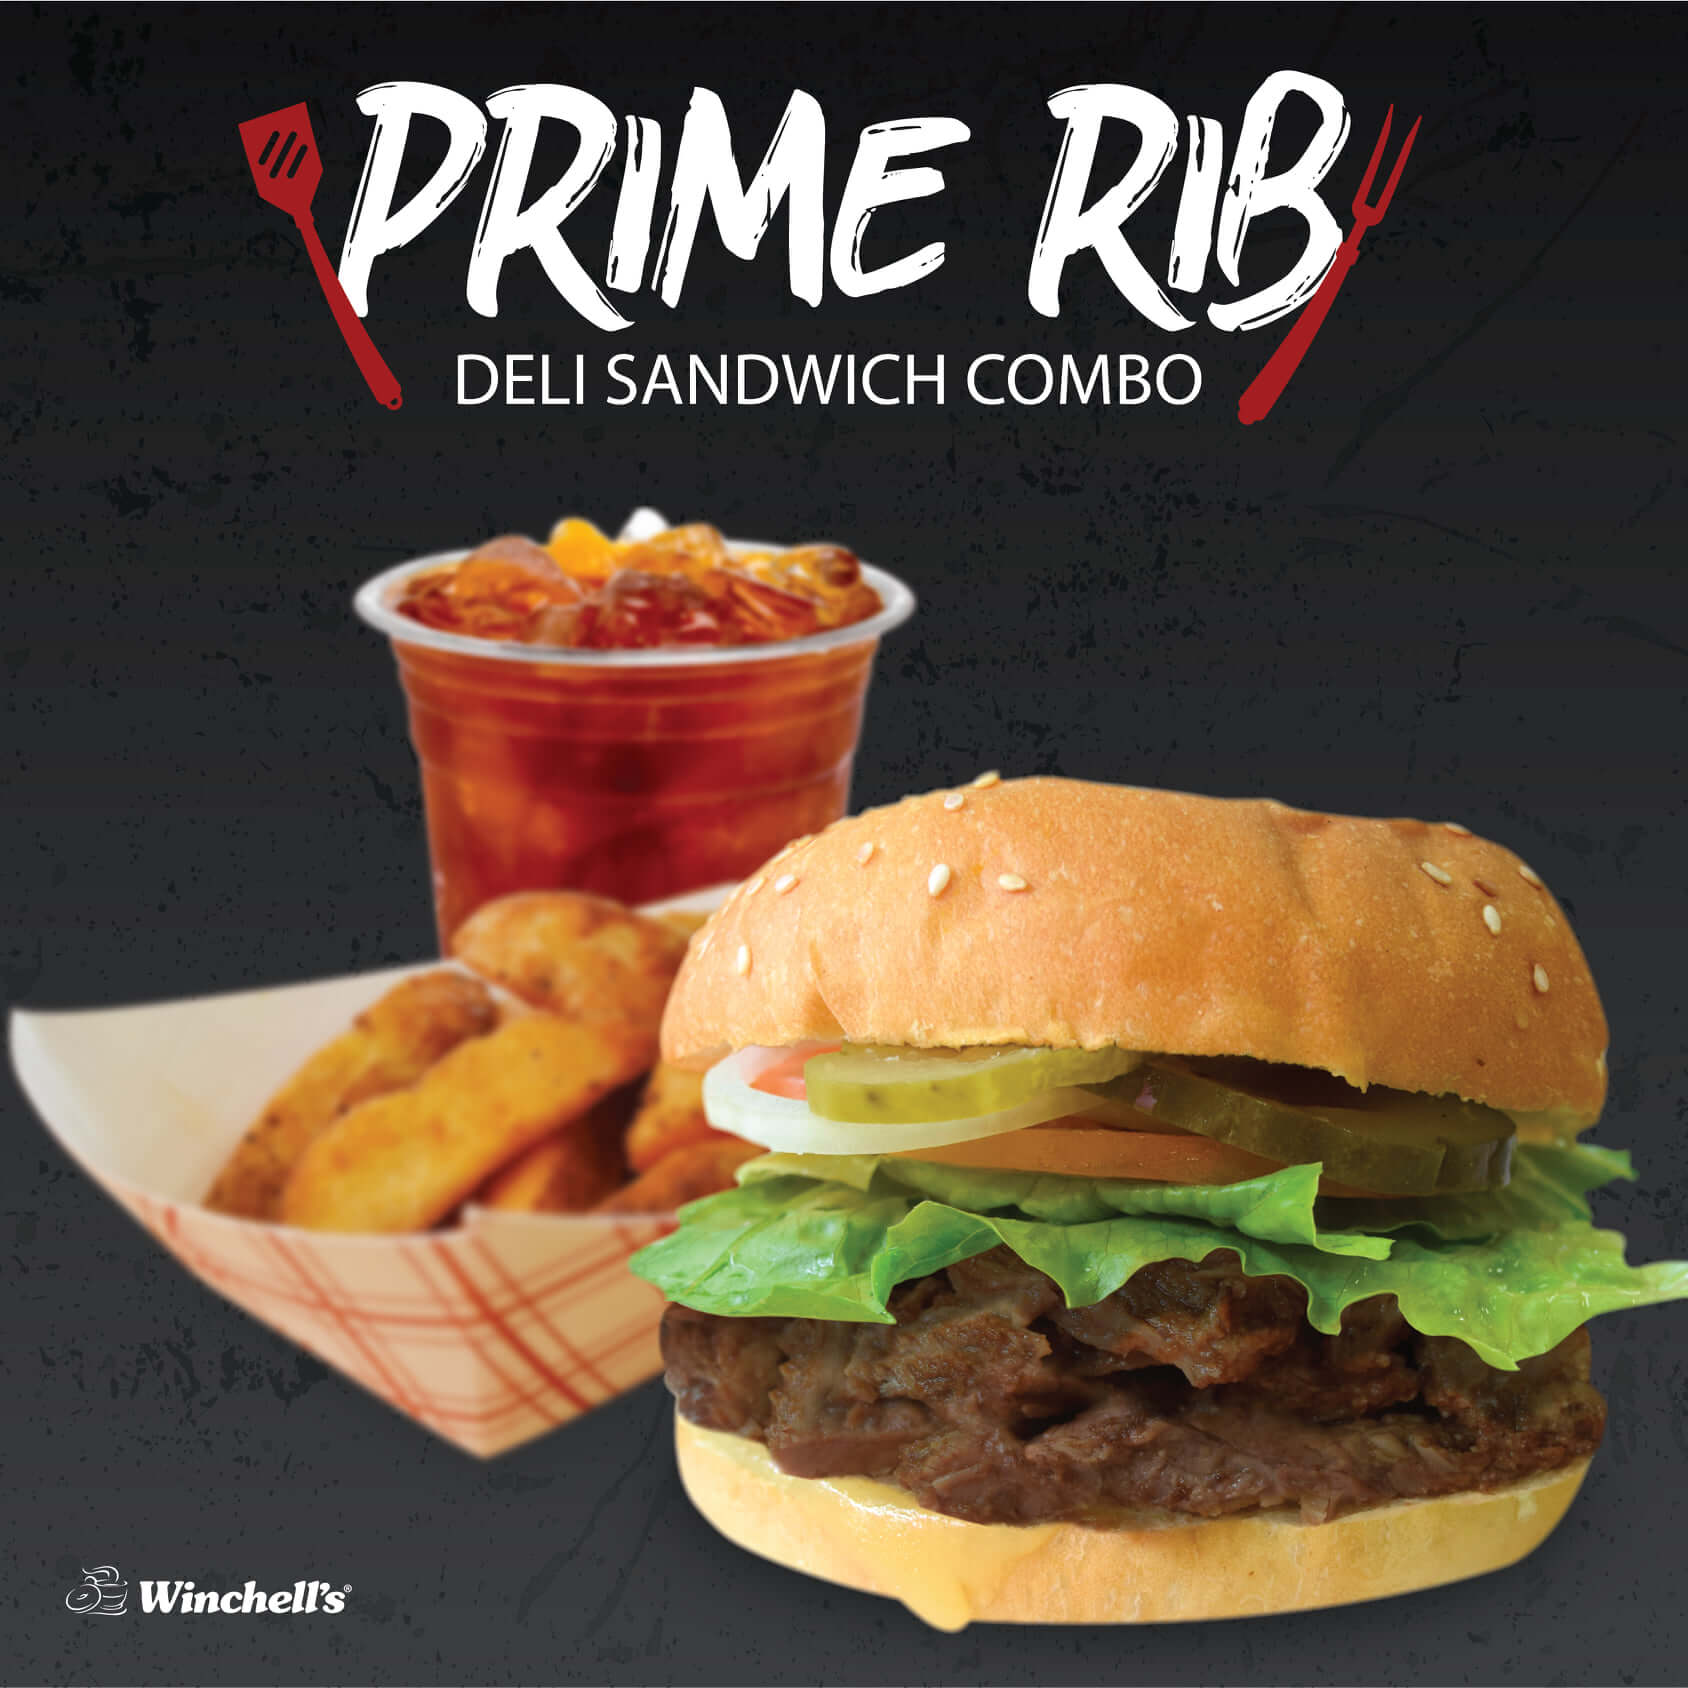 promotions - Prime Rib Sandwich Combo